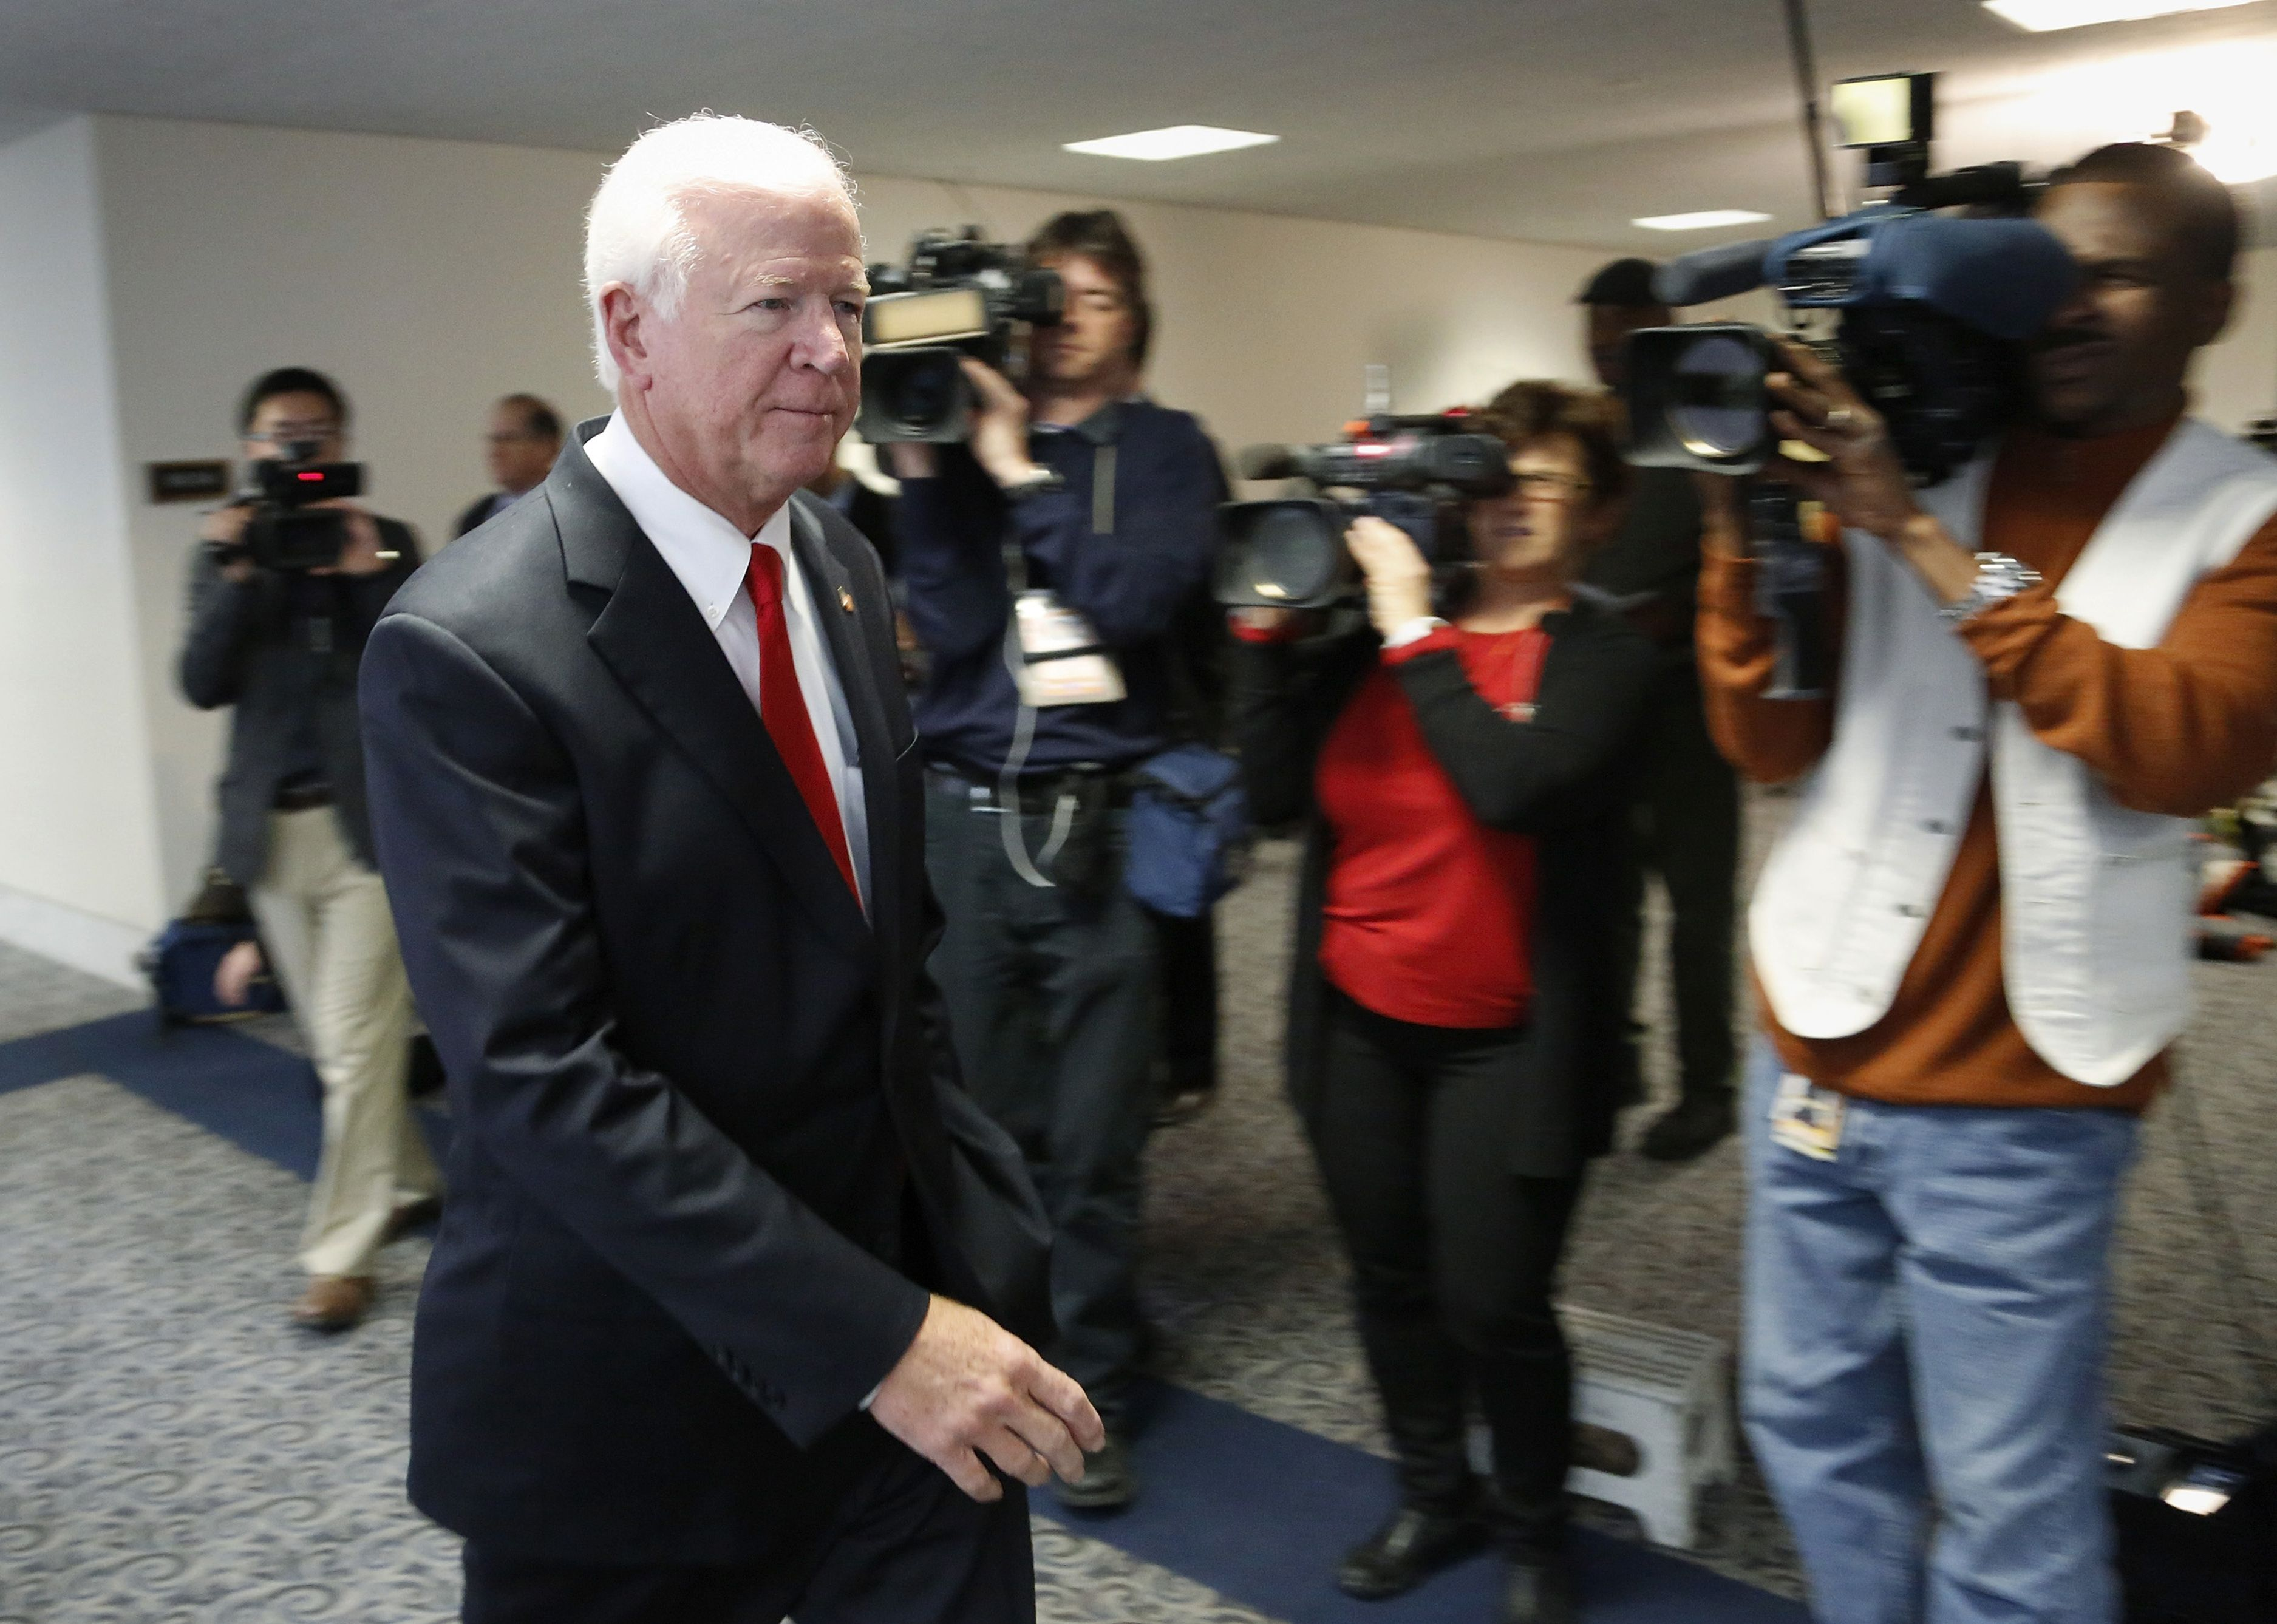 U.S. Sen. Saxby Chambliss, R-Ga., arrives at a closed door hearing on Capitol Hill. The senator announced Friday he will retire rather than seek re-election in 2014 for a third term.